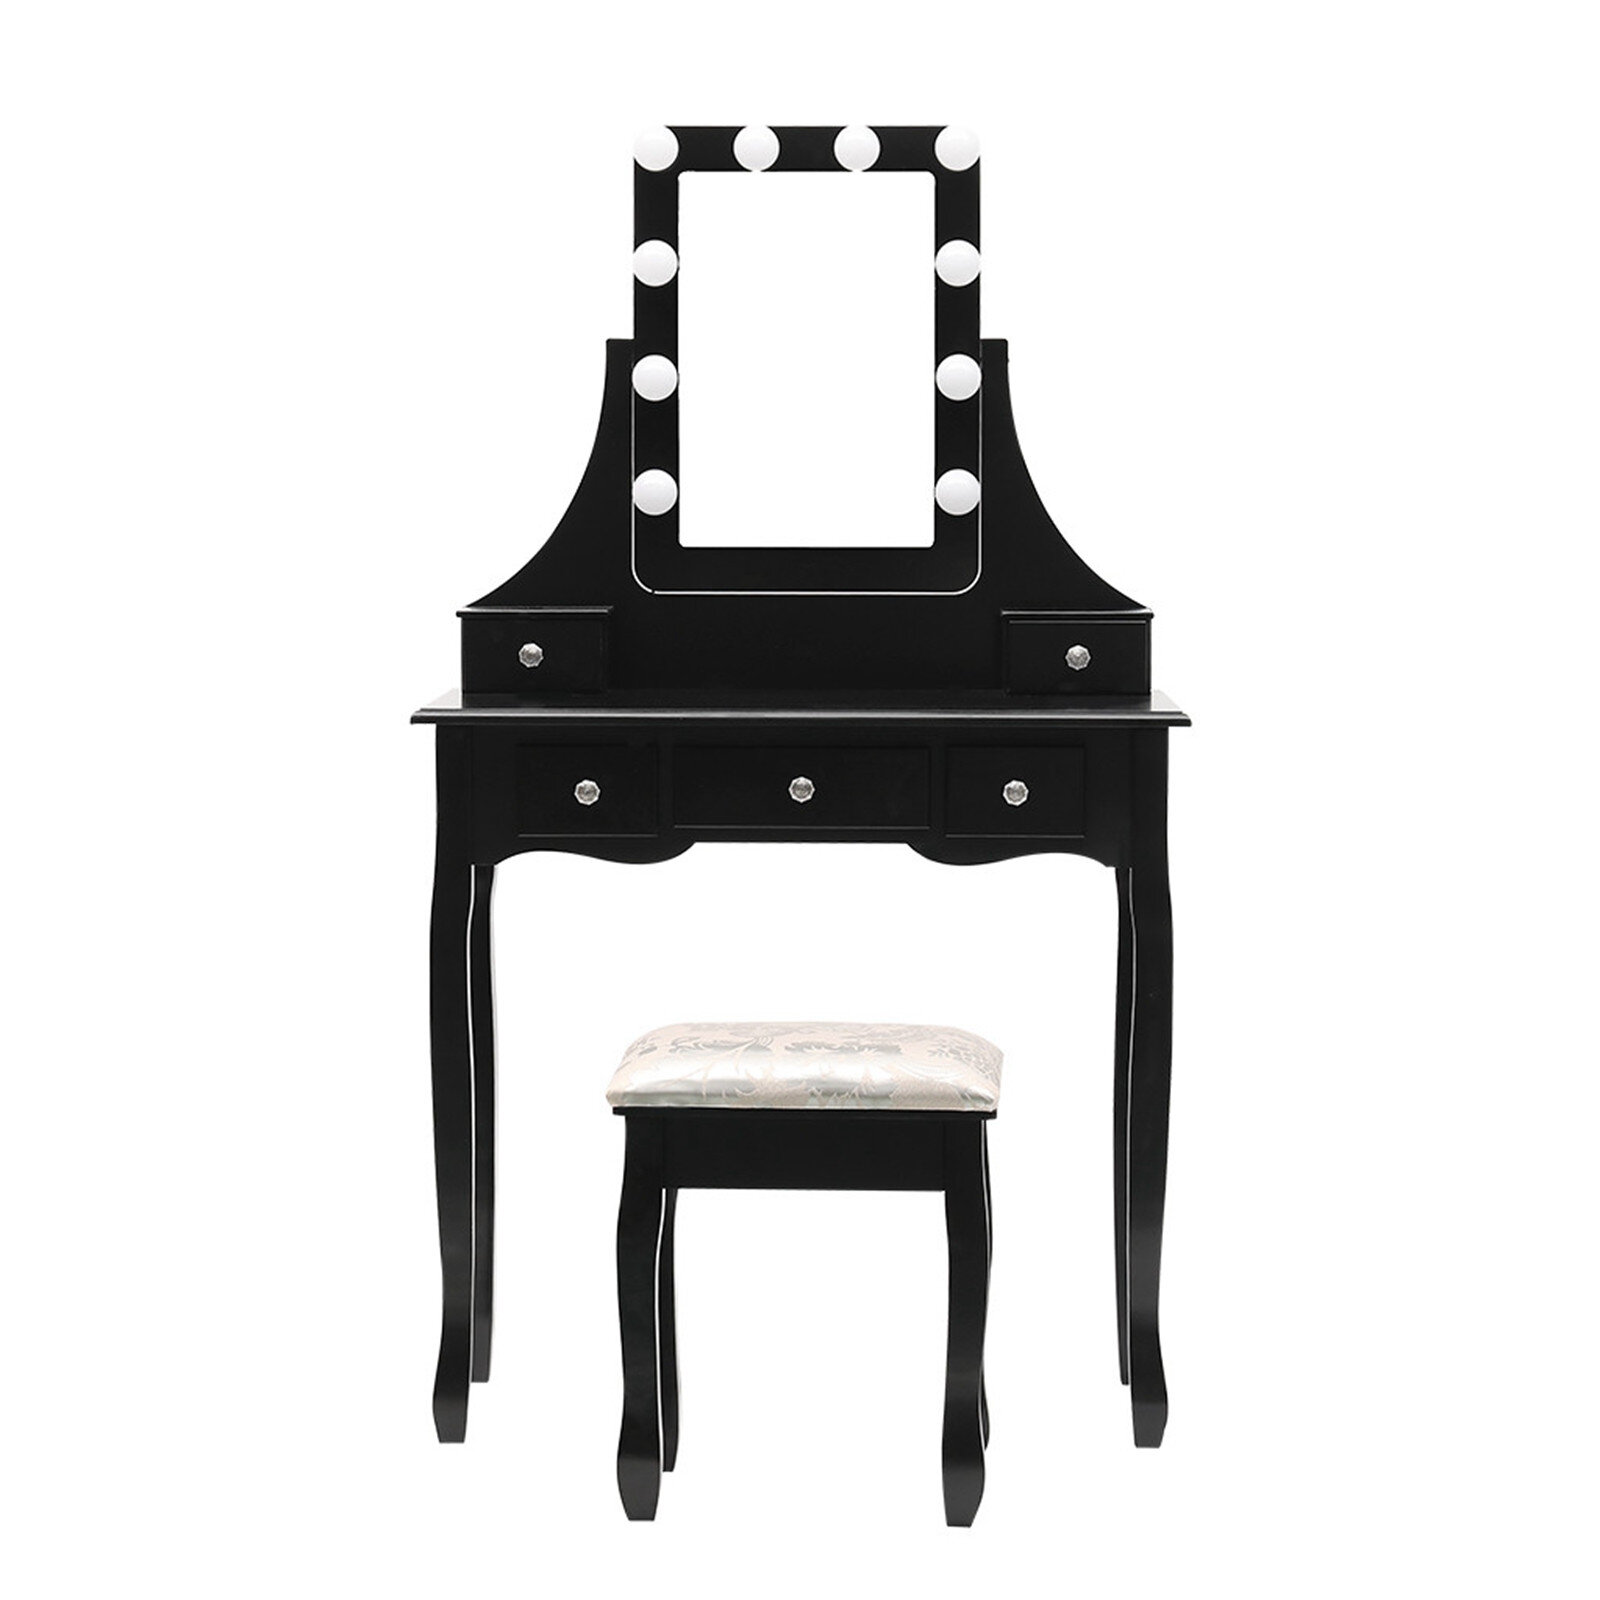 House Of Hampton Led Vanity Set With 10 Dimmable Light Bulbs Dressing Table Vanity Makeup Table 53 54x31 5x15 75 Wayfair